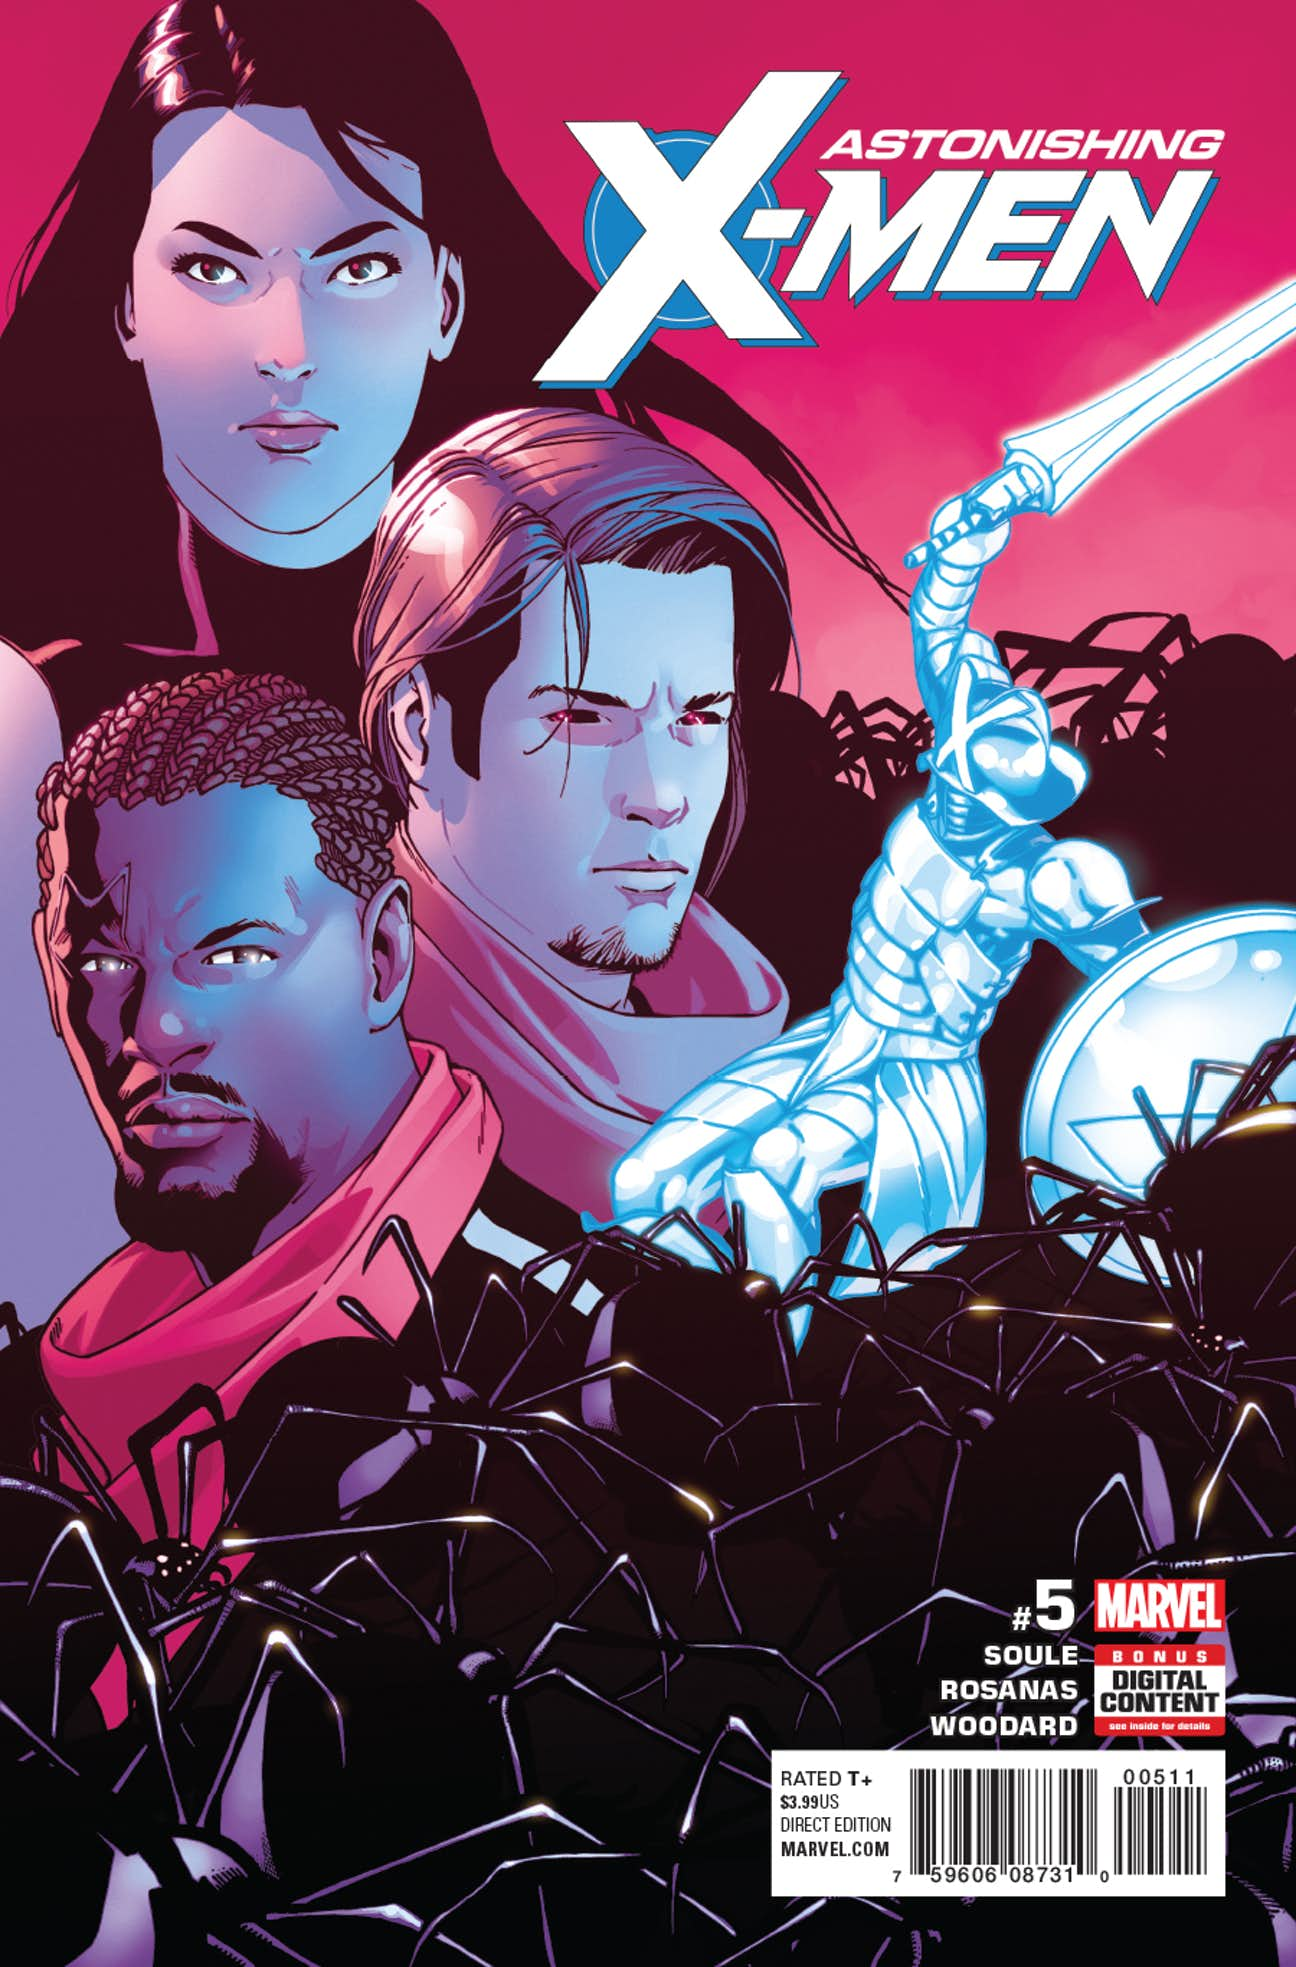 Astonishing X-Men Vol 4 5